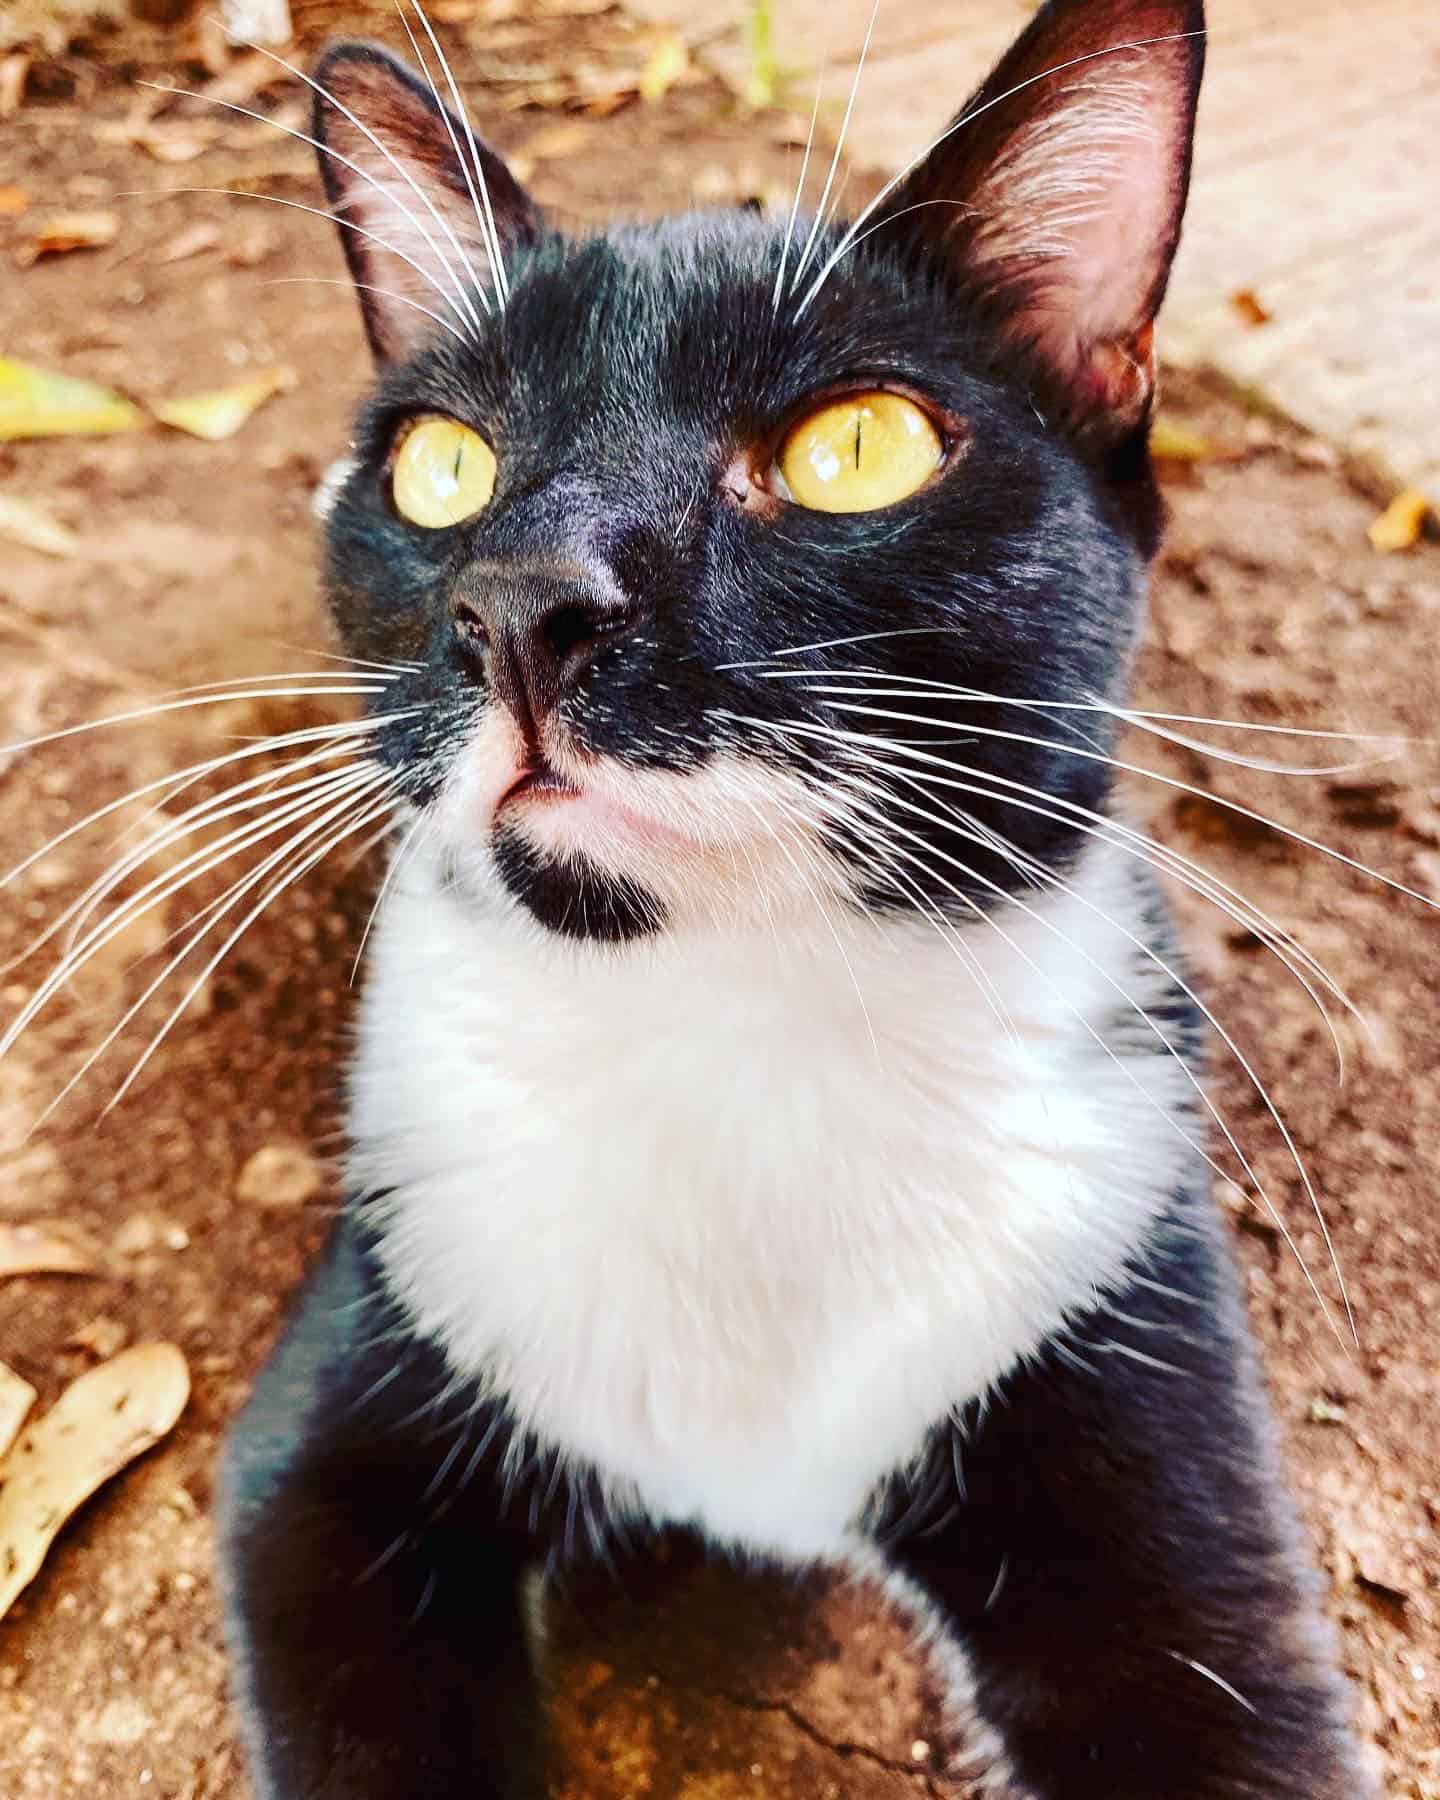 why do some cats have such long whiskers?